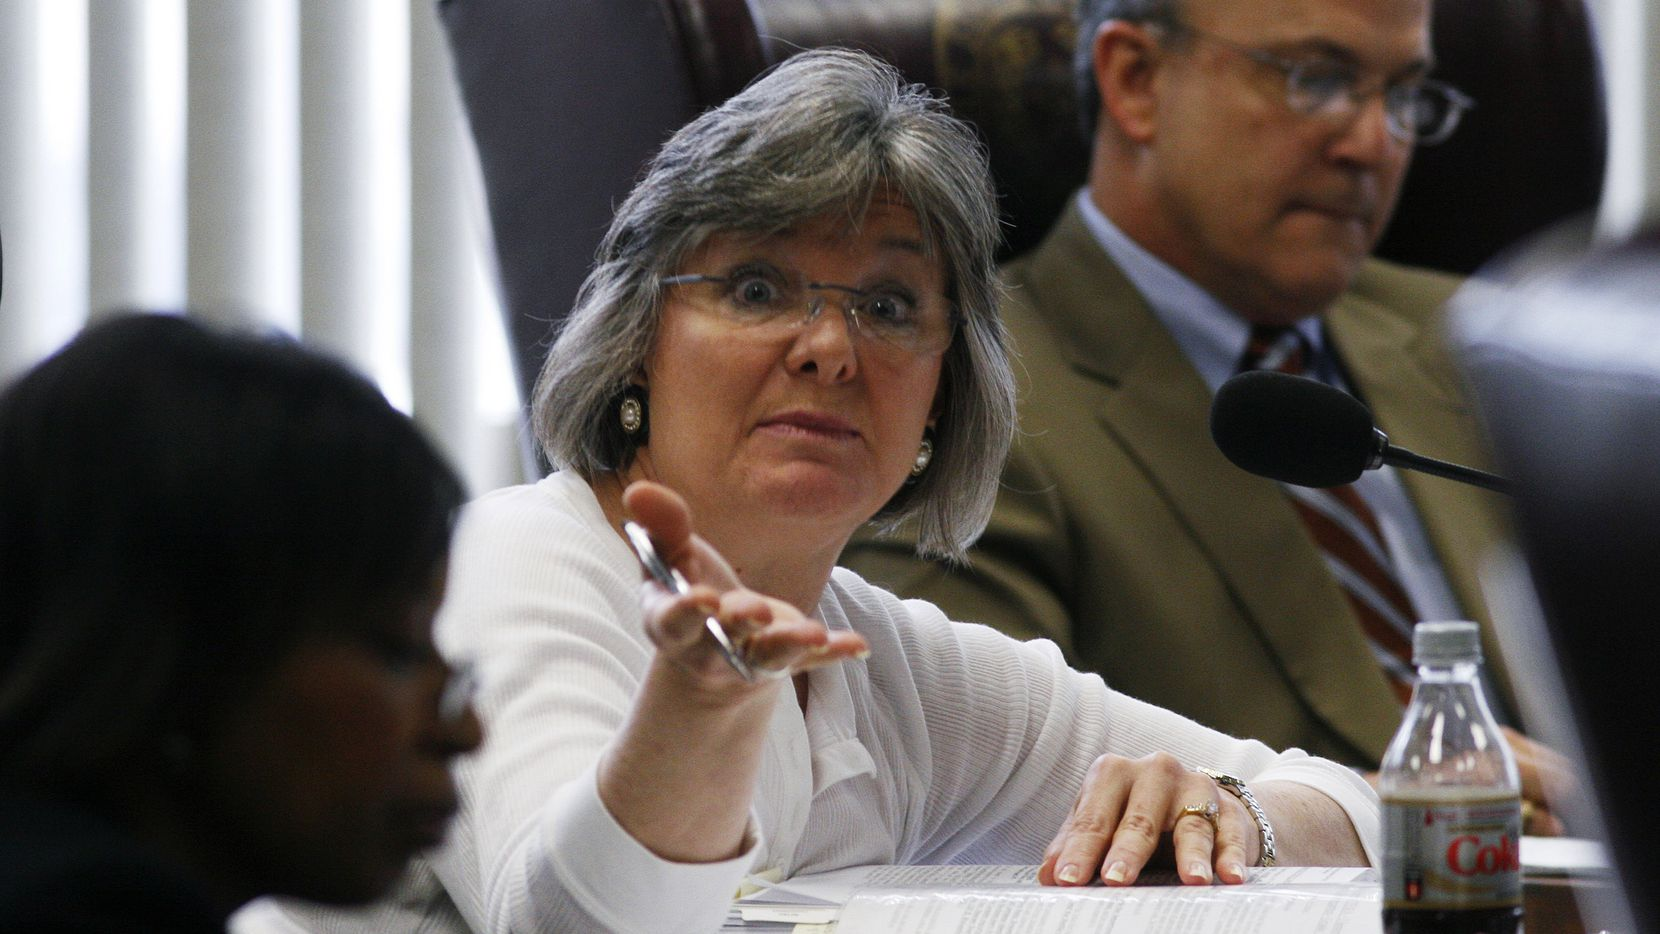 ORG XMIT: TXJP105 State Board of Education chair Gail Lowe mediates public testimony on social studies curriculum during a board meeting in Austin, Texas, on Wednesday, March 10, 2010. (AP Photo/Jack Plunkett)